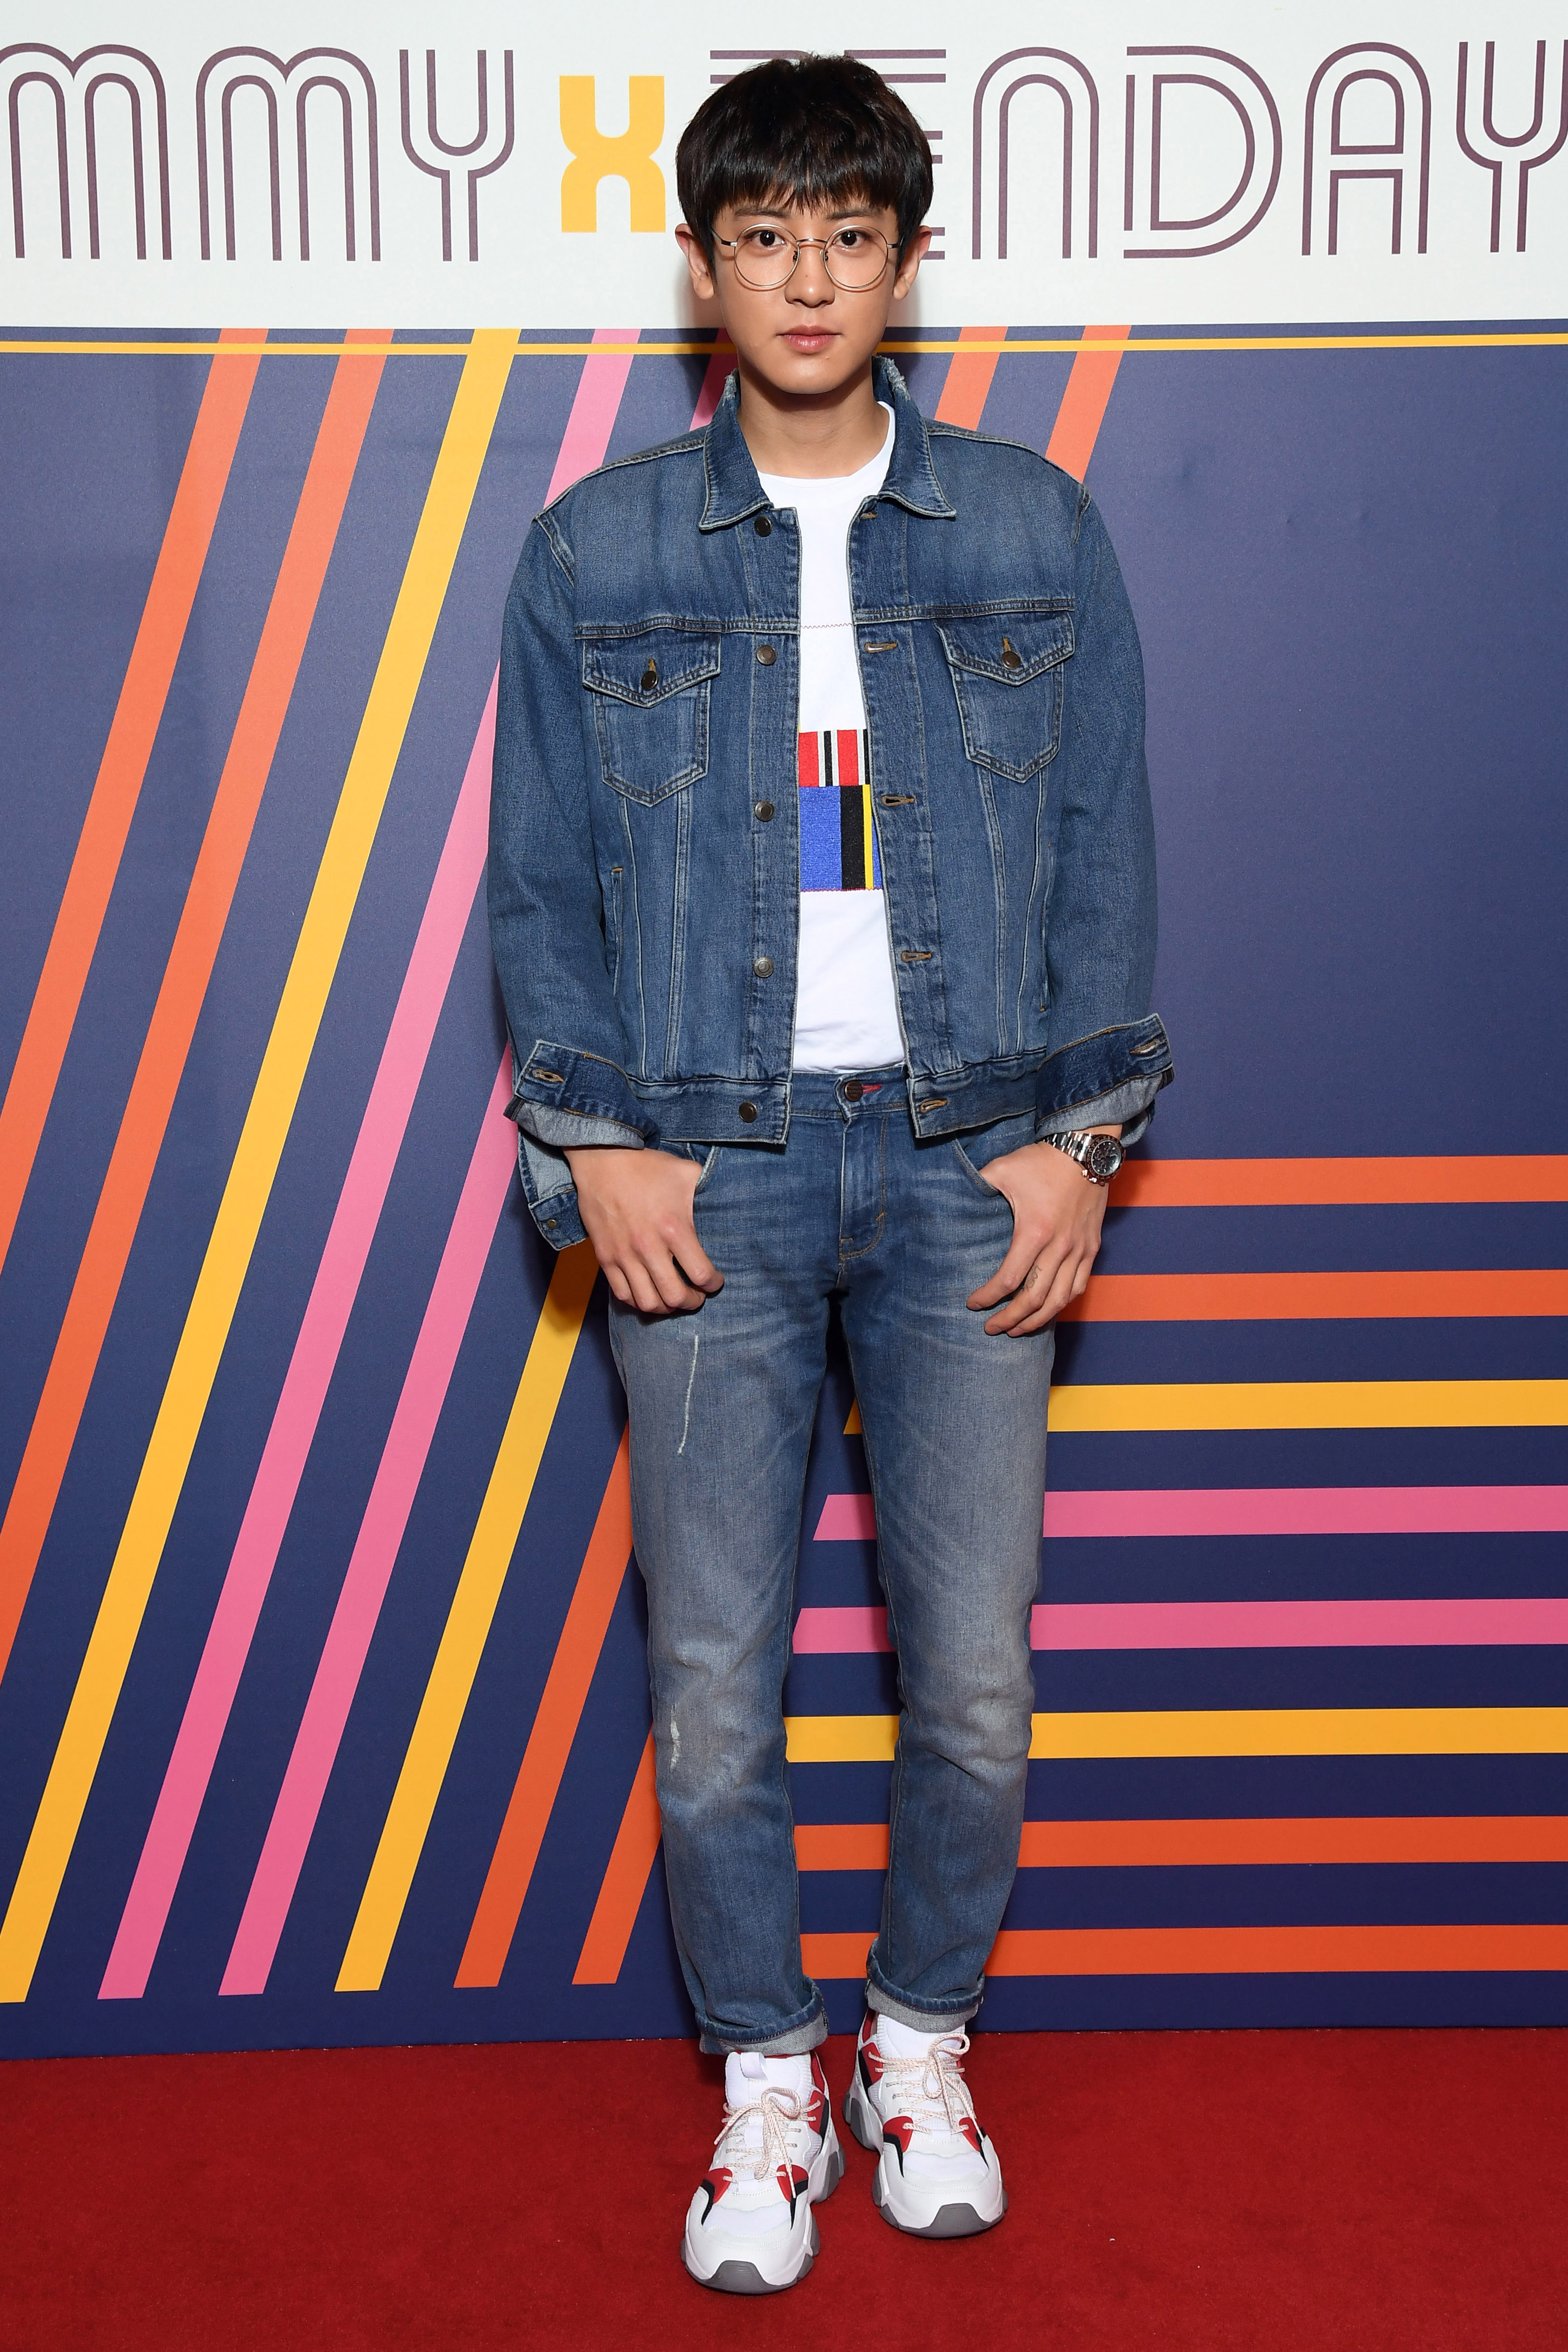 PARIS, FRANCE - MARCH 02: Chanyeol Park attends the Tommy Hilfiger TOMMYNOW Spring 2019 : TommyXZendaya Premieres at Theatre des Champs-Elysees on March 02, 2019 in Paris, France. (Photo by Pascal Le Segretain/Getty Images For Tommy Hilfiger)